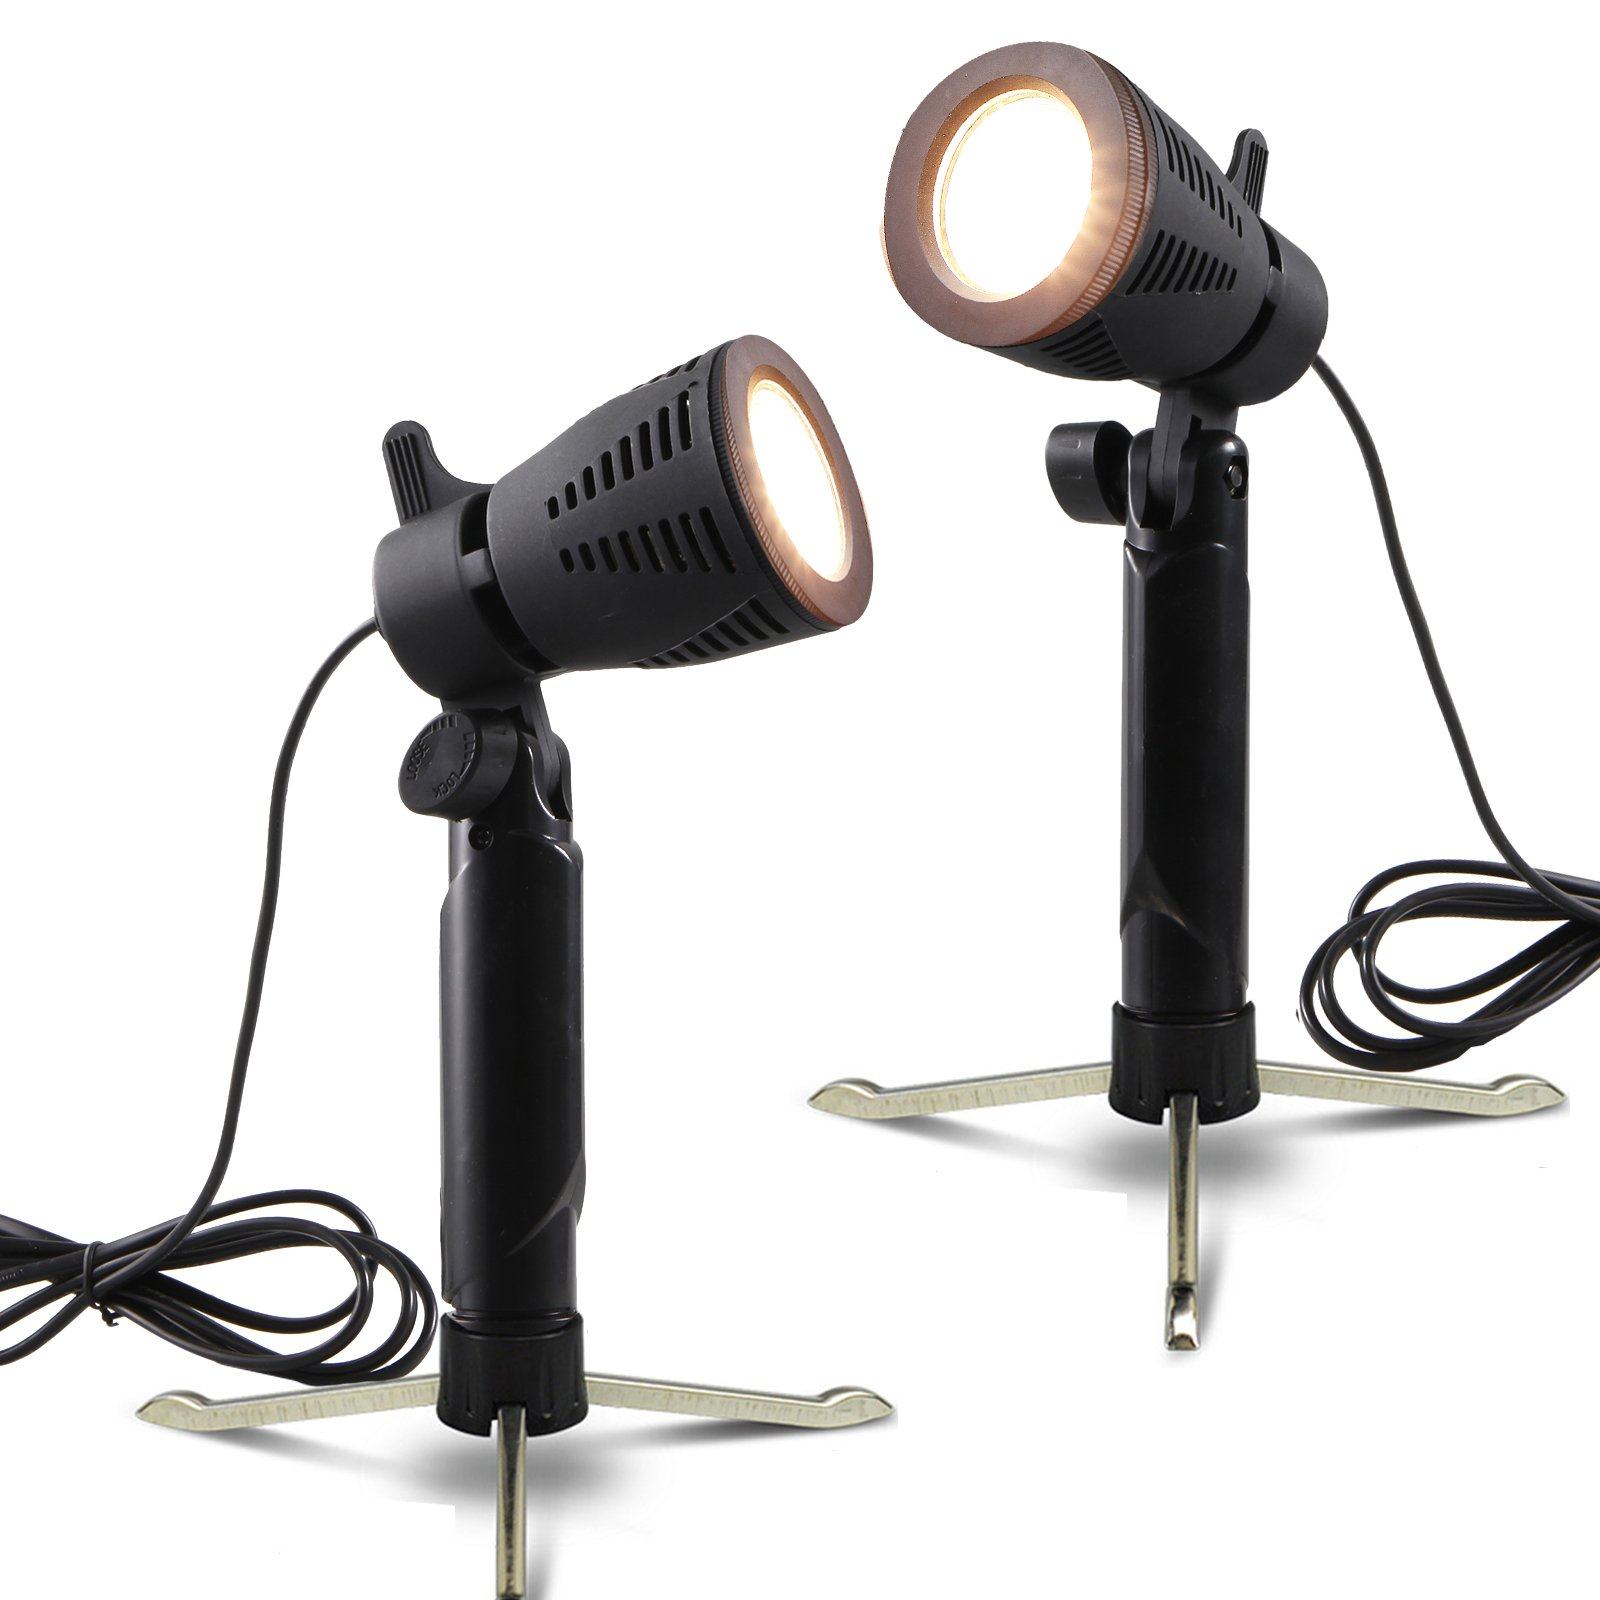 Selens Table Top Lighting kit Studio Continuous Portable Led Lamp with Stand for Video and Product Photography, Pack of 2 (Warm color)